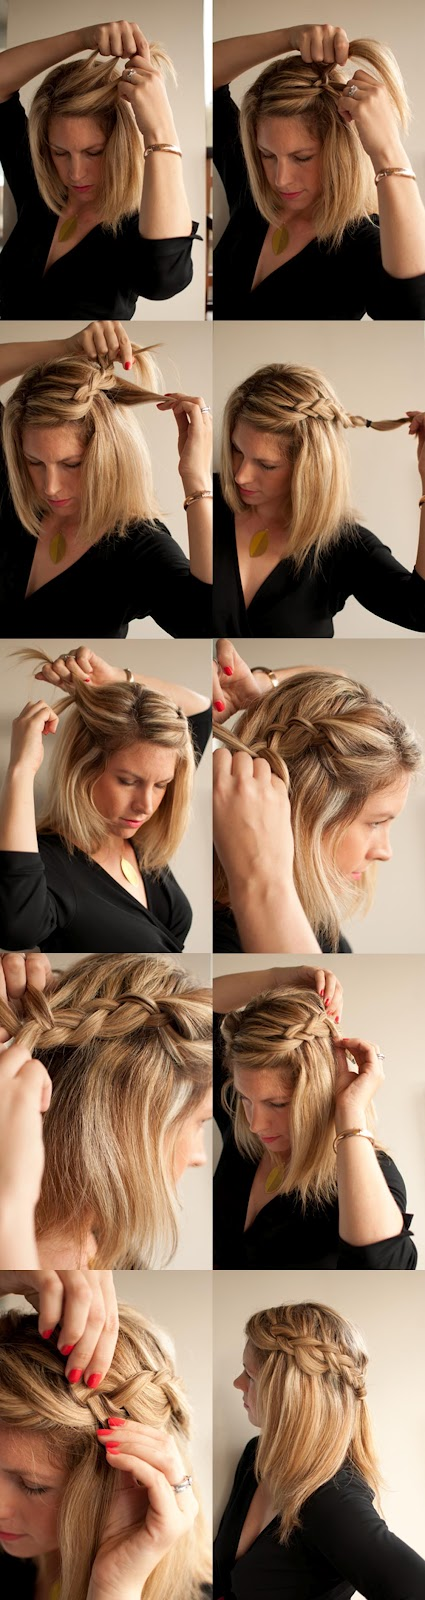 Easy and simple side braid hairstyle